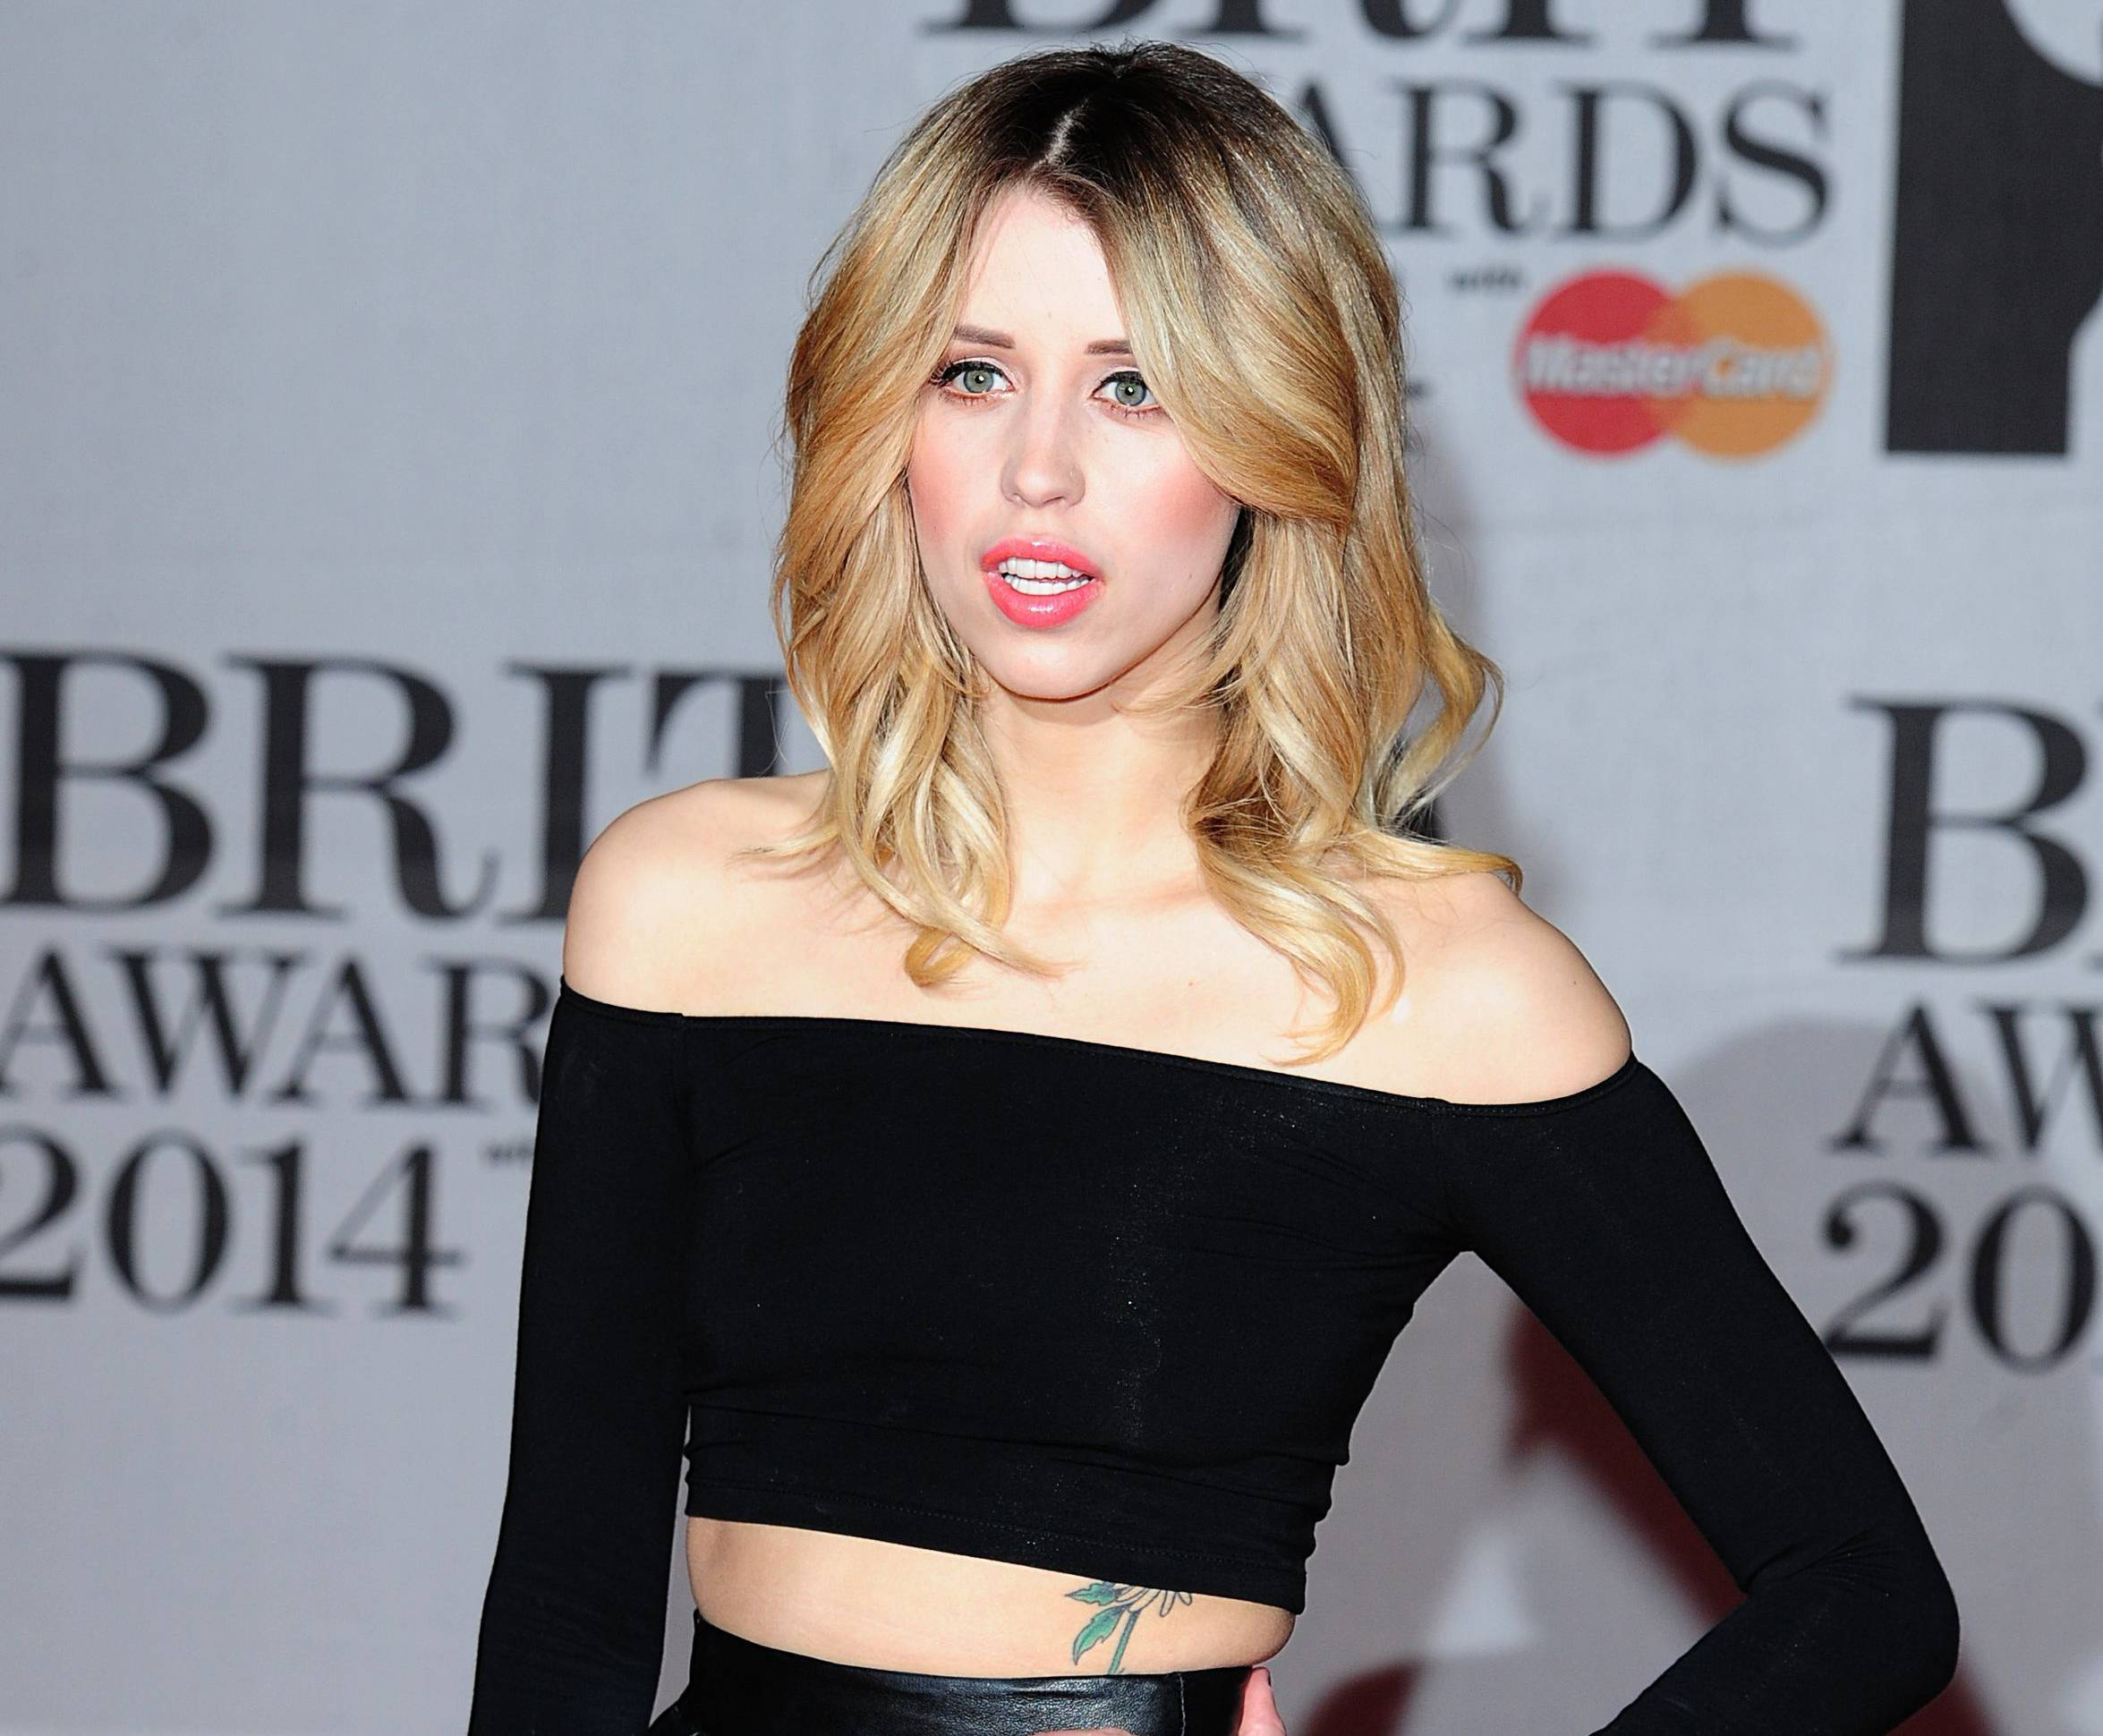 "In this Feb. 19, 2014 file photo Peaches Geldof, daughter of Bob Geldof is seen at the Brit Awards 2014, in London. Peaches Geldof, the model and television presenter who was concert organizer Bob Geldof's daughter, has died at age 25. Bob Geldof said in a statement Monday, April 7, 2014: ""Peaches has died. We are beyond pain."""